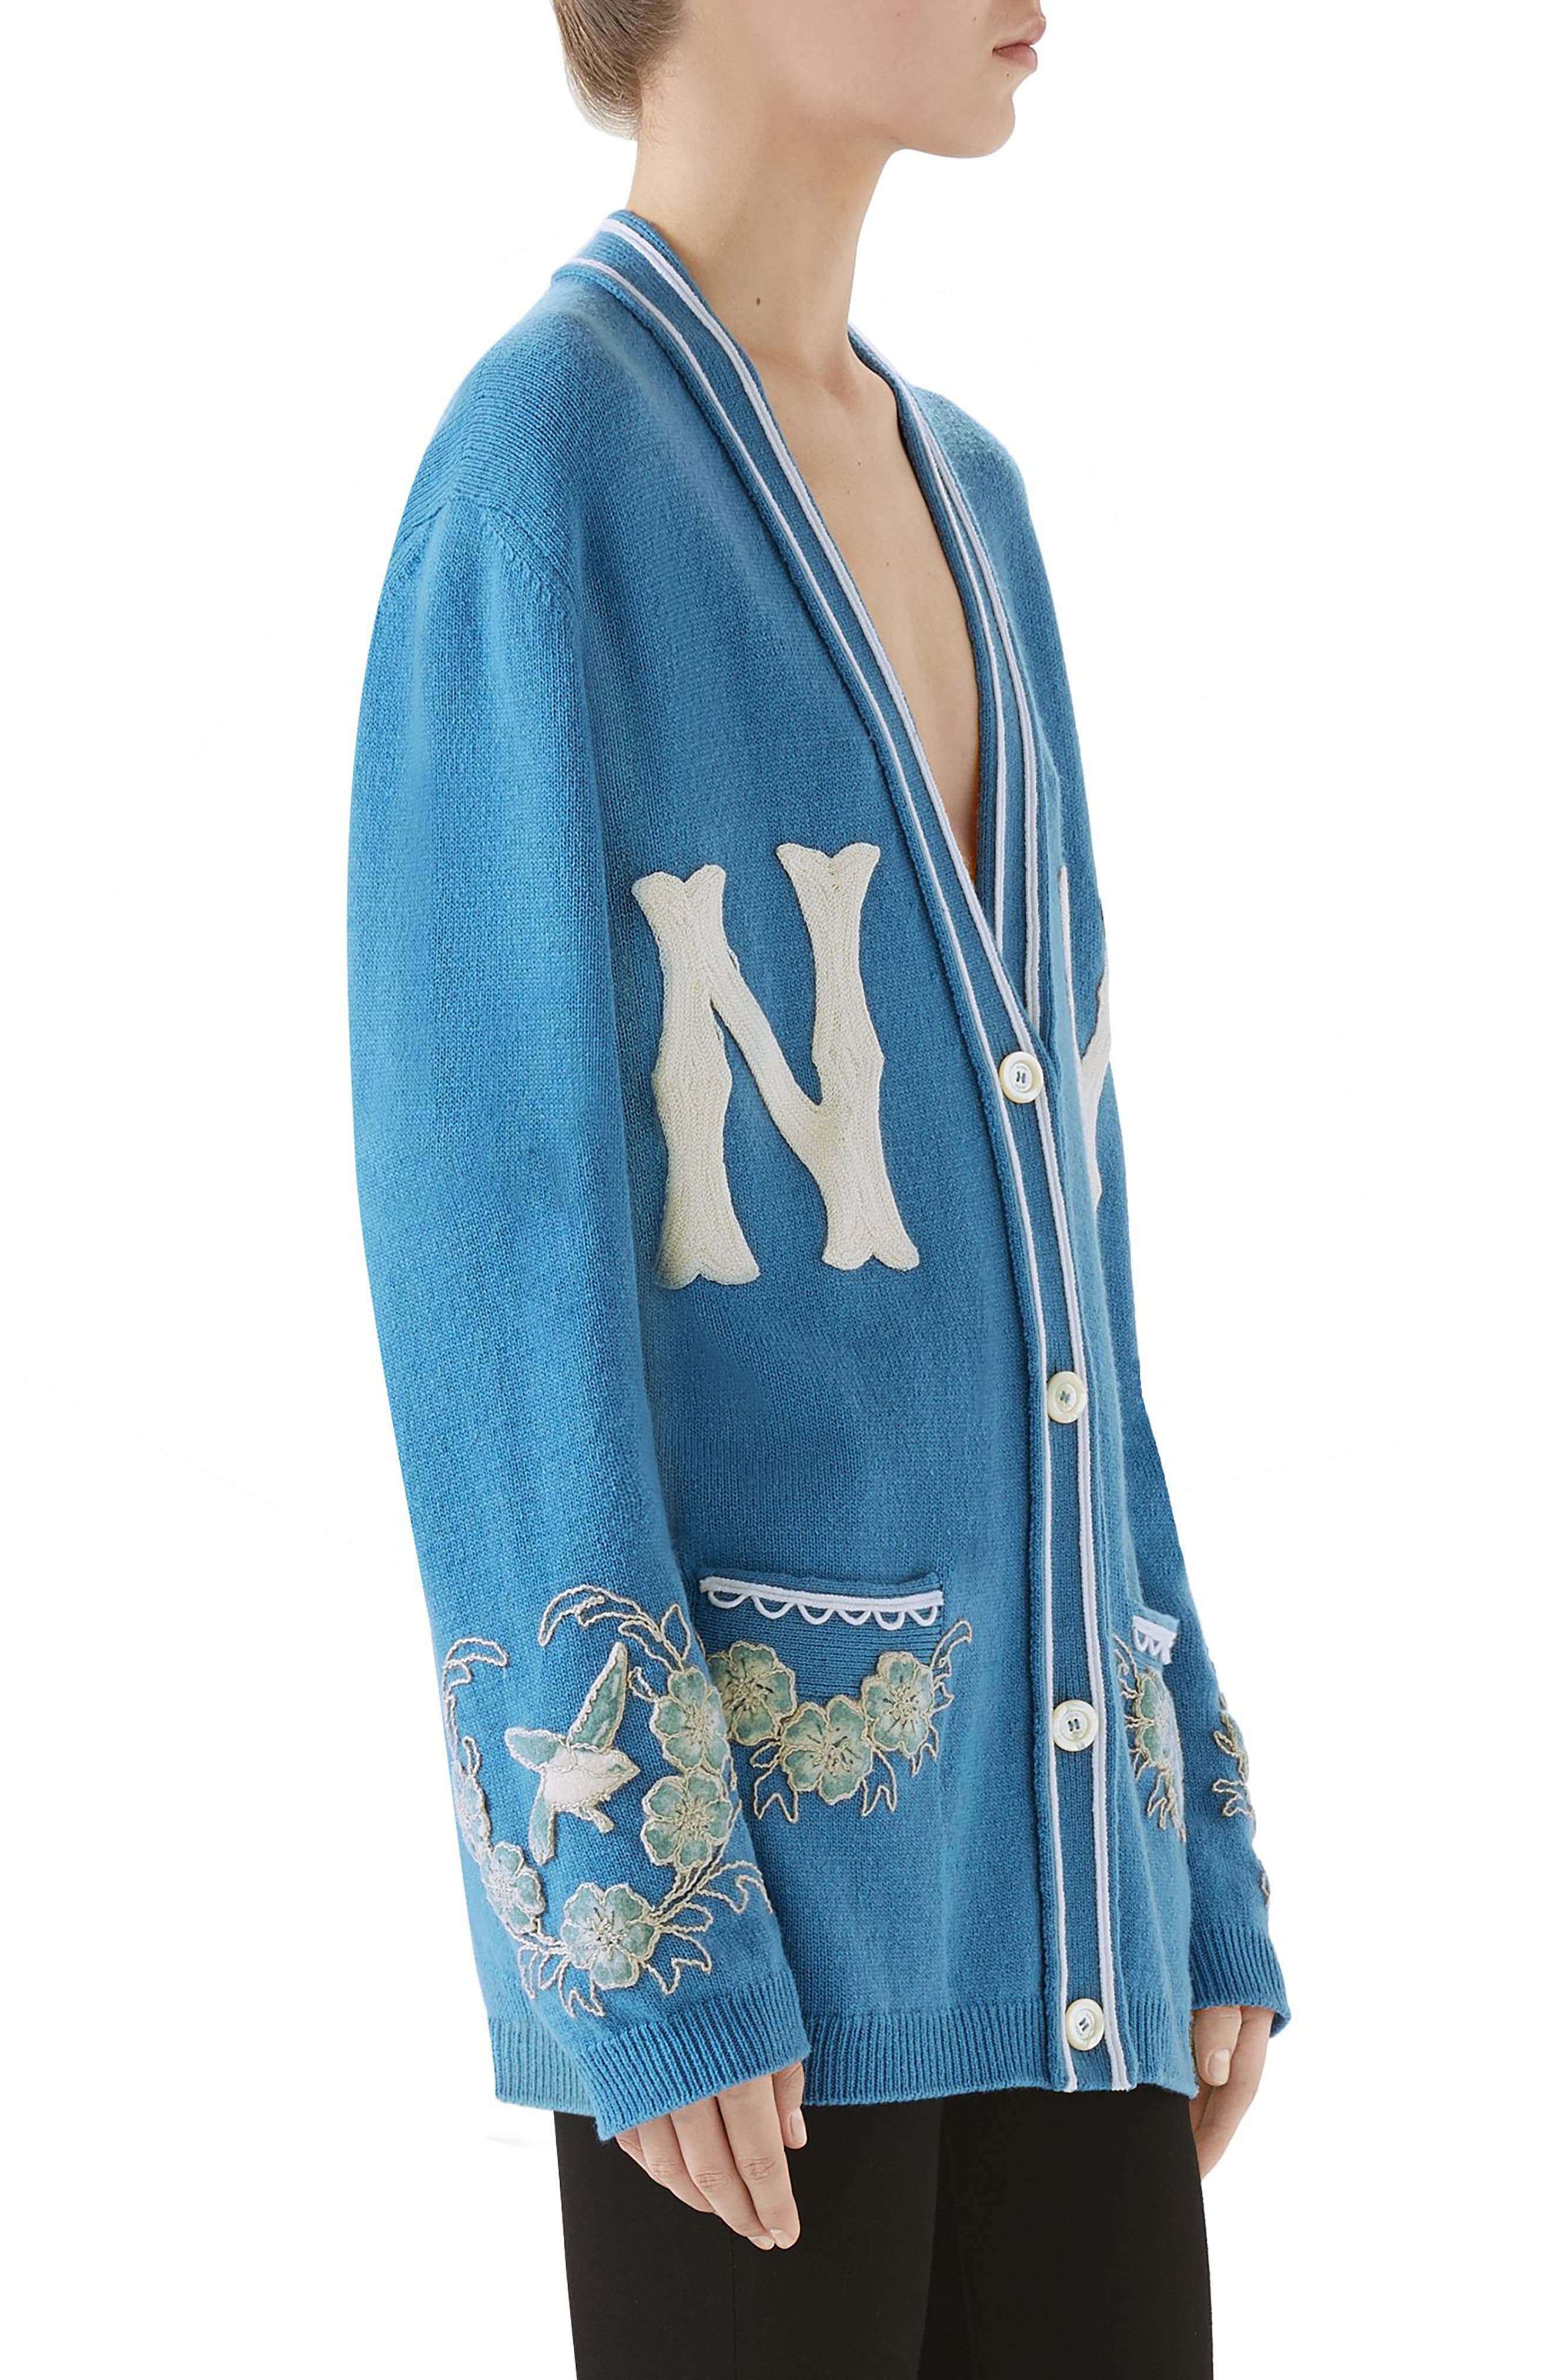 NY Embroidered Wool Cardigan,                             Alternate thumbnail 3, color,                             BLUE